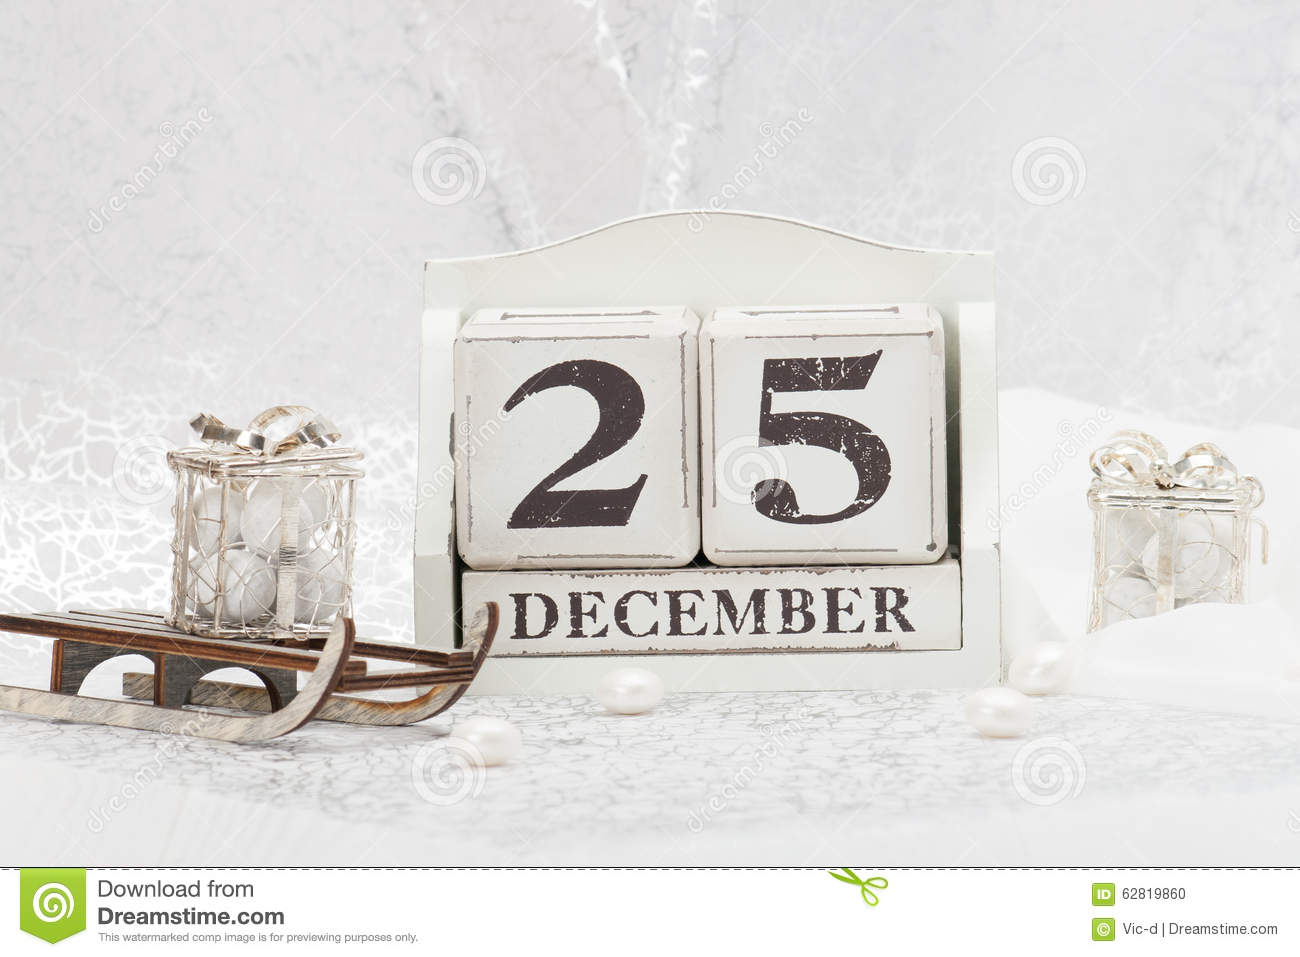 Christmas Day Date On Calendar. December 25 Stock Photo - Image ...